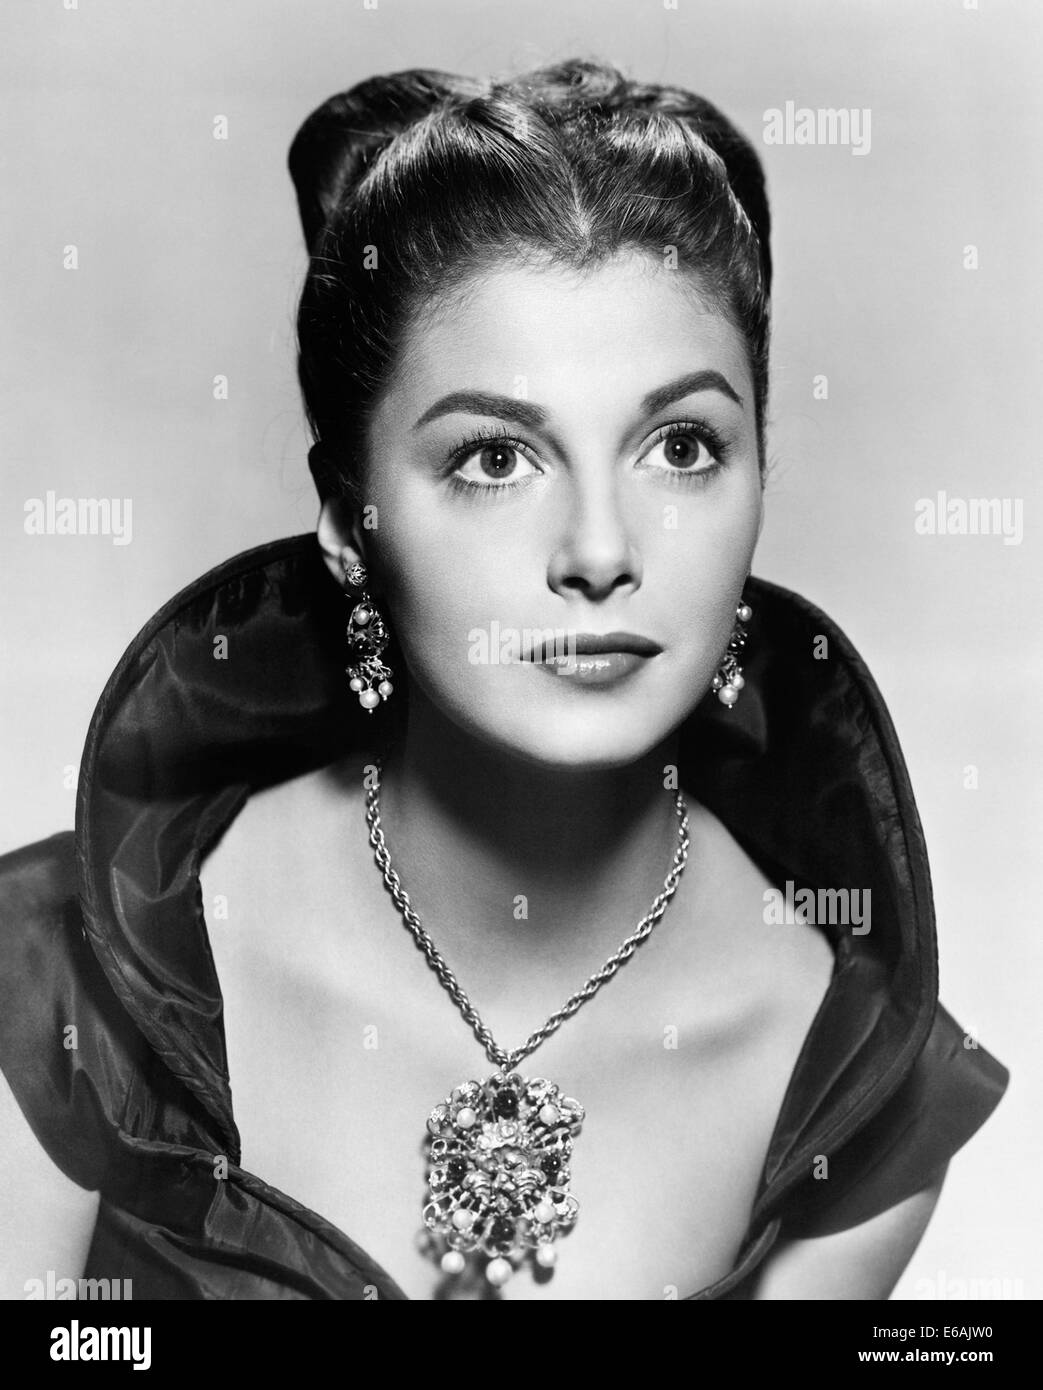 Ana Maria Pier Angeli pier angeli (1932-1971) italian film and tv actress about